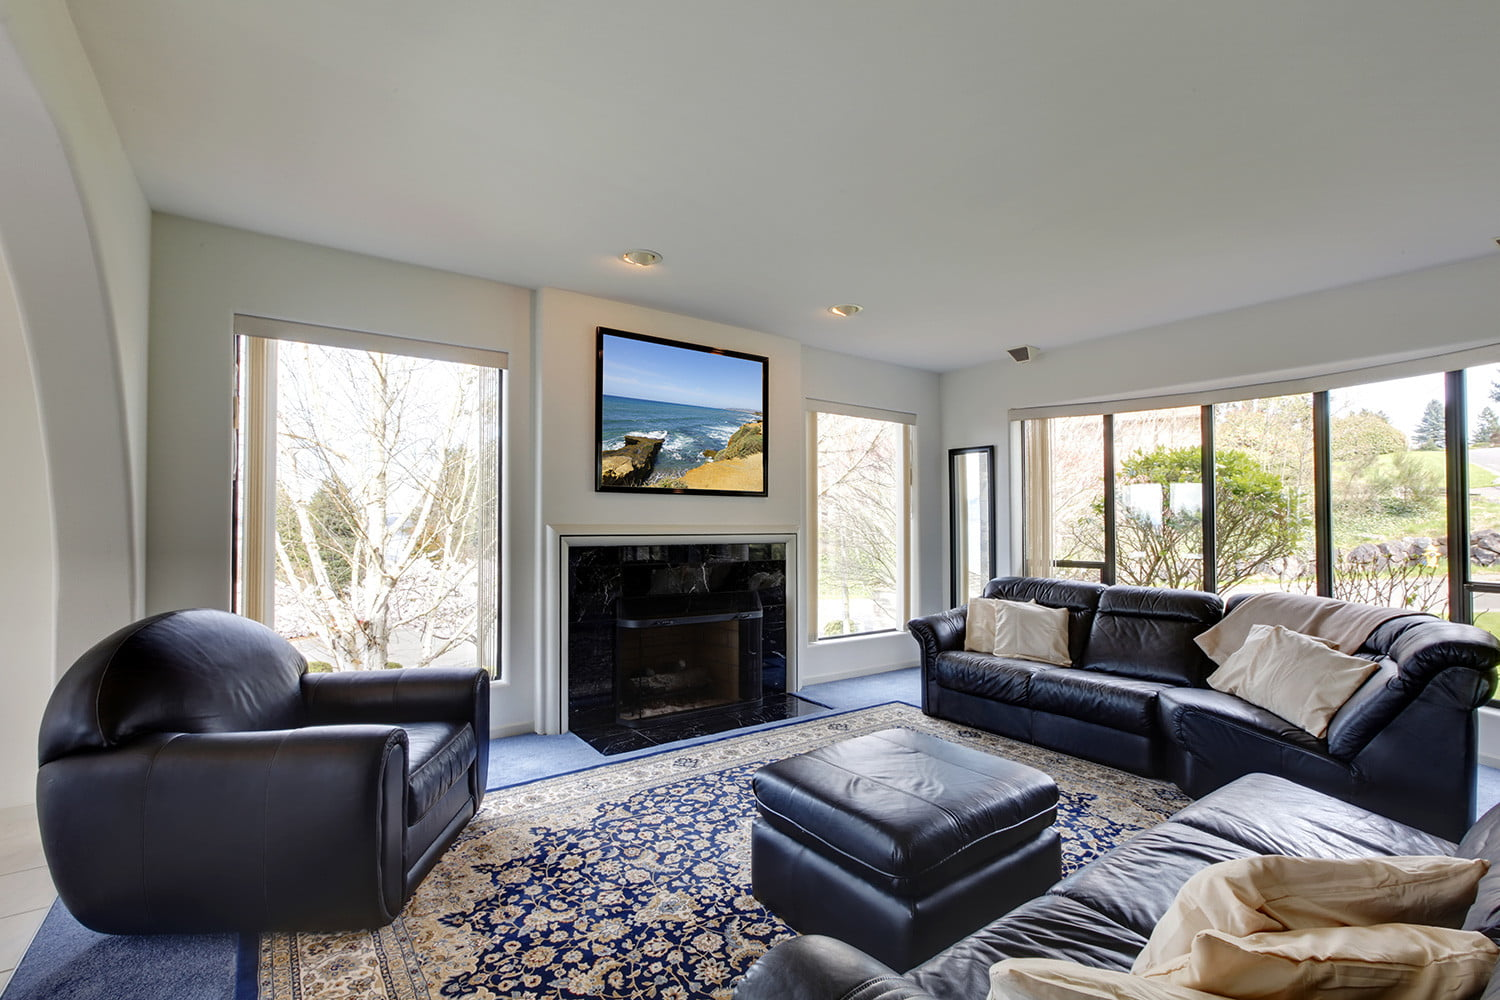 living room design ideas tv over fireplace good colors paint why you shouldn t mount your above digital trends please dont the 1